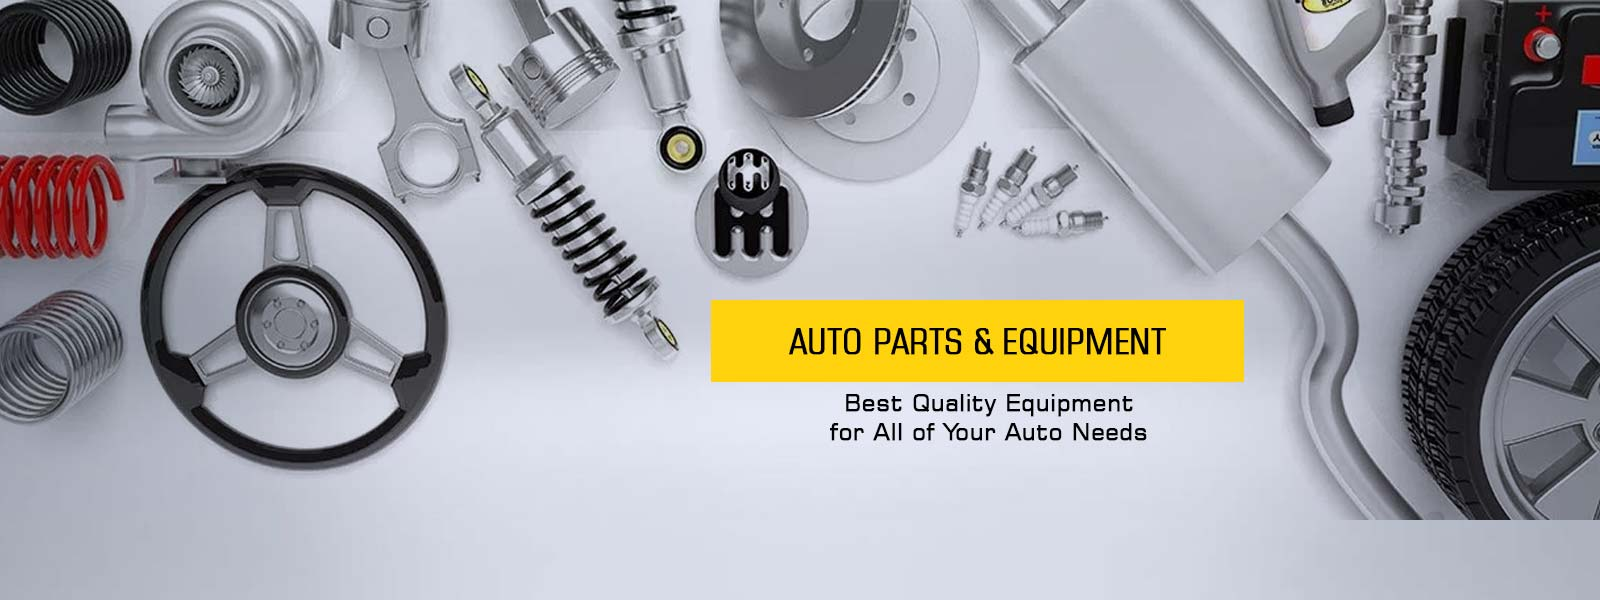 Auto Parts And Equipment Manufacturer, Exporters and Suppliers in Chandigarh